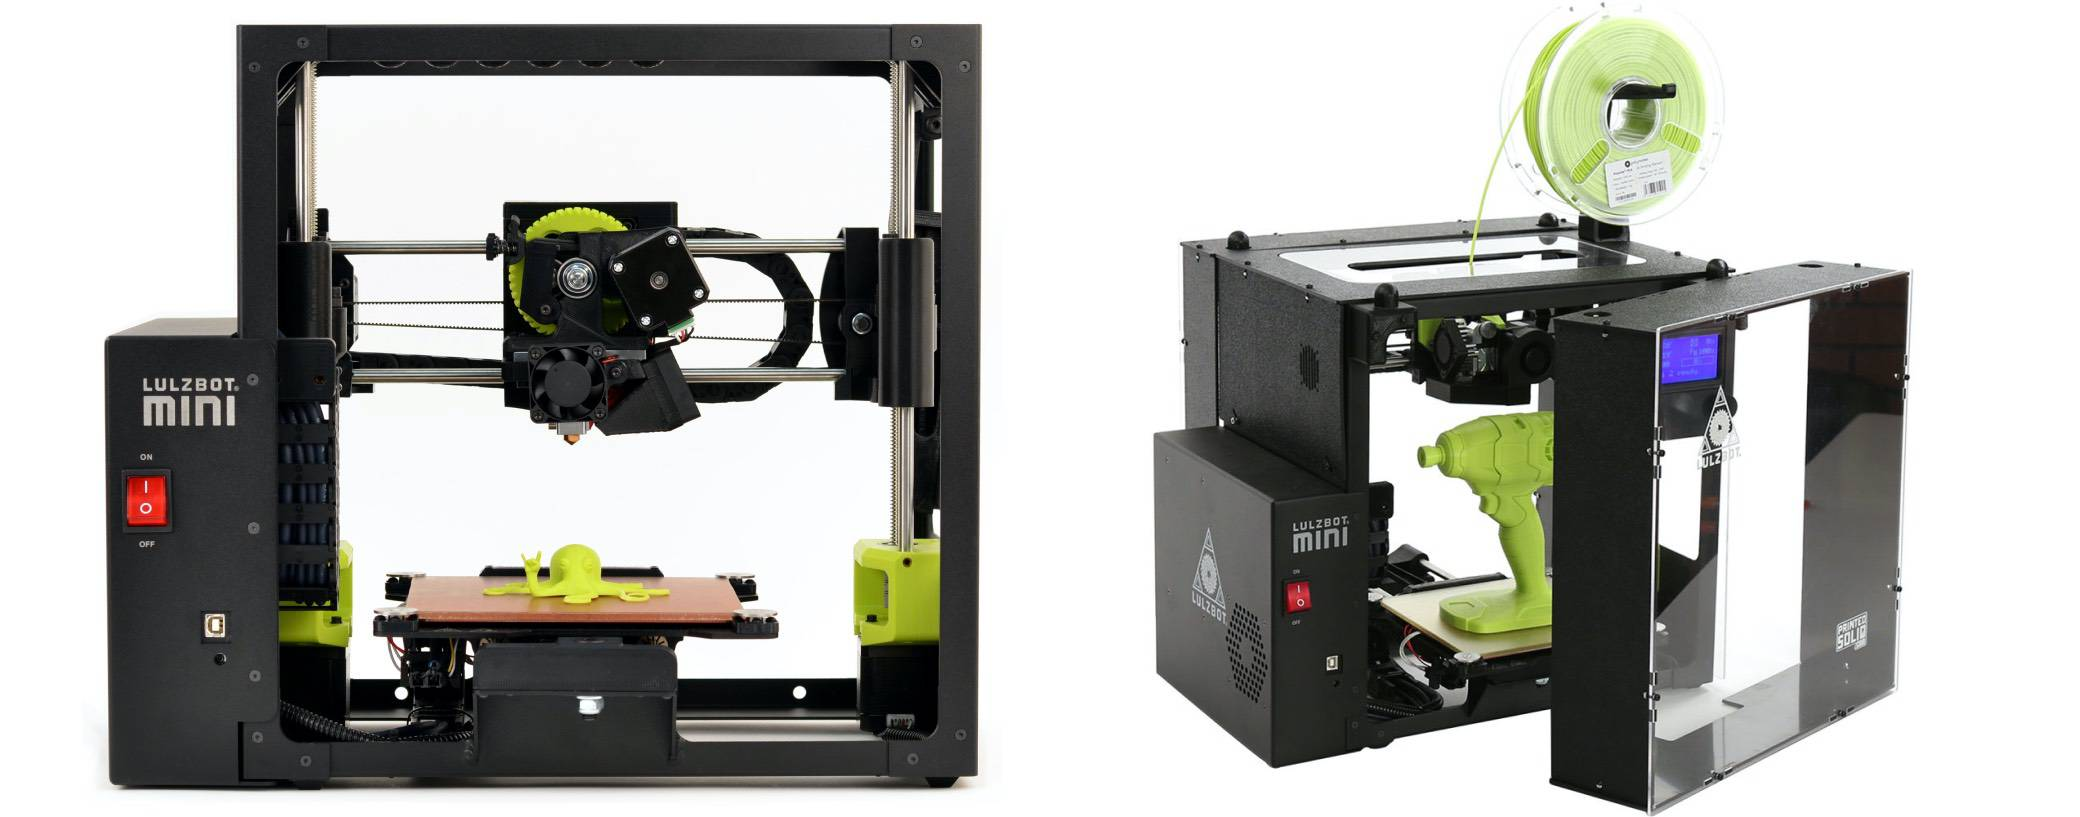 lulzbot-mini2 screenshot